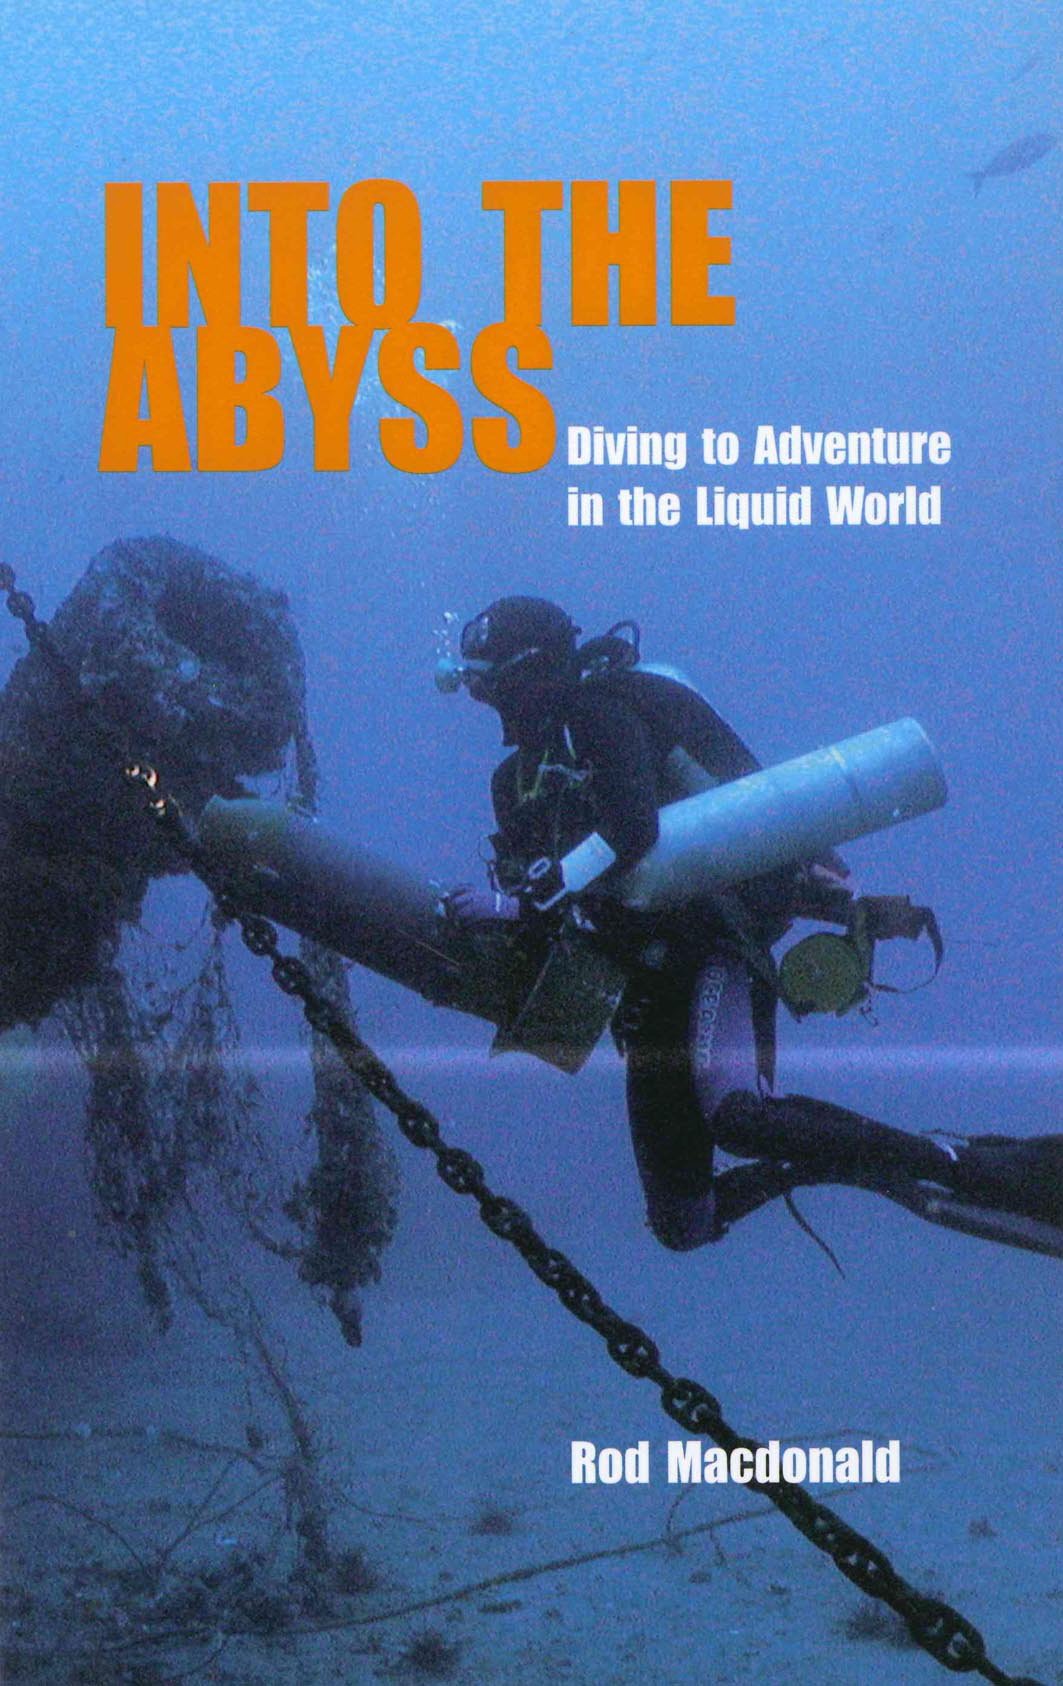 Into the Abyss Diving to Adventure in the Liquid World